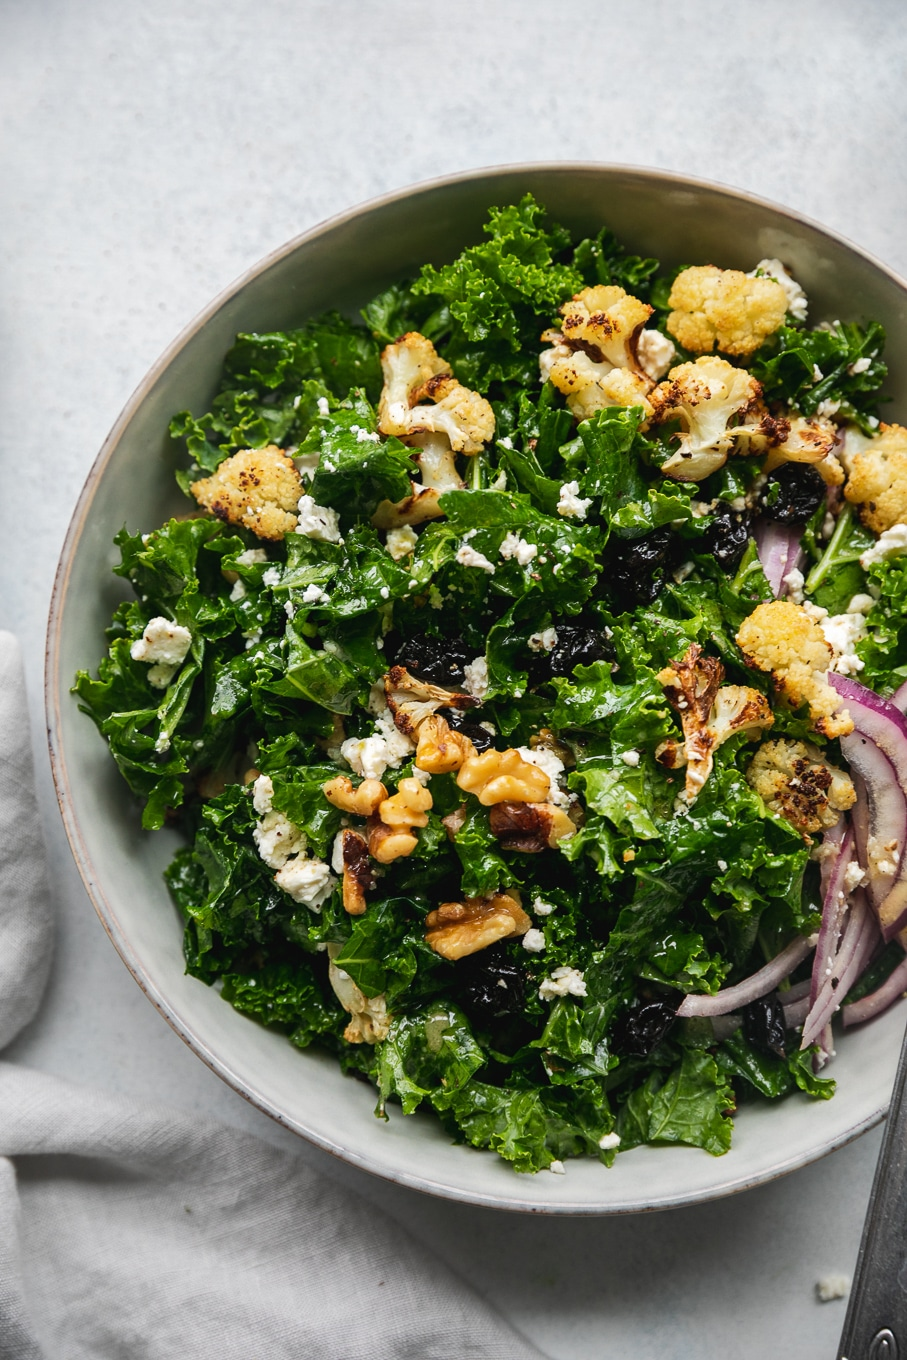 Overhead close up shot of a bowl of kale salad with roasted cauliflower, red onion, feta, dried cherries, and walnuts